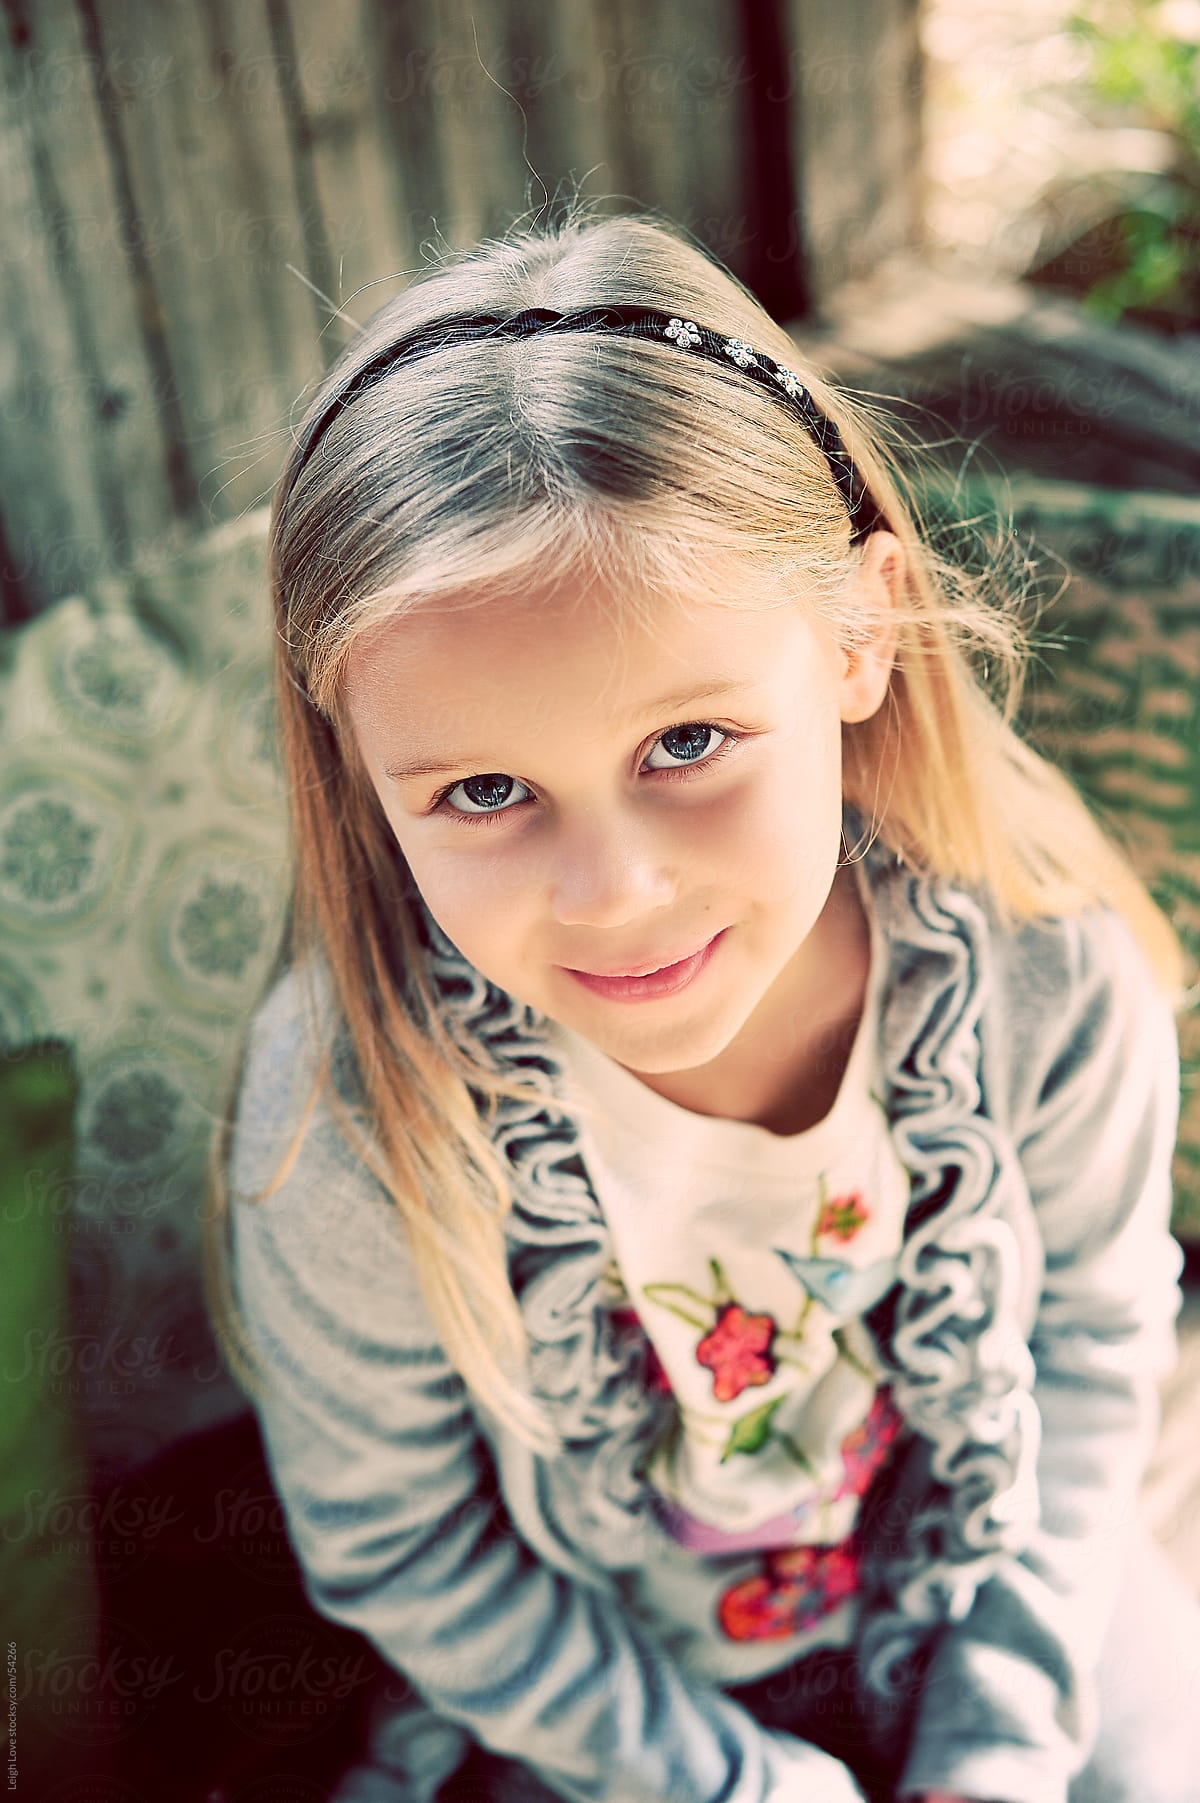 Young Blonde Hair, Blue Eyed Girl, Looking Up At The Camera  Stocksy United-8384